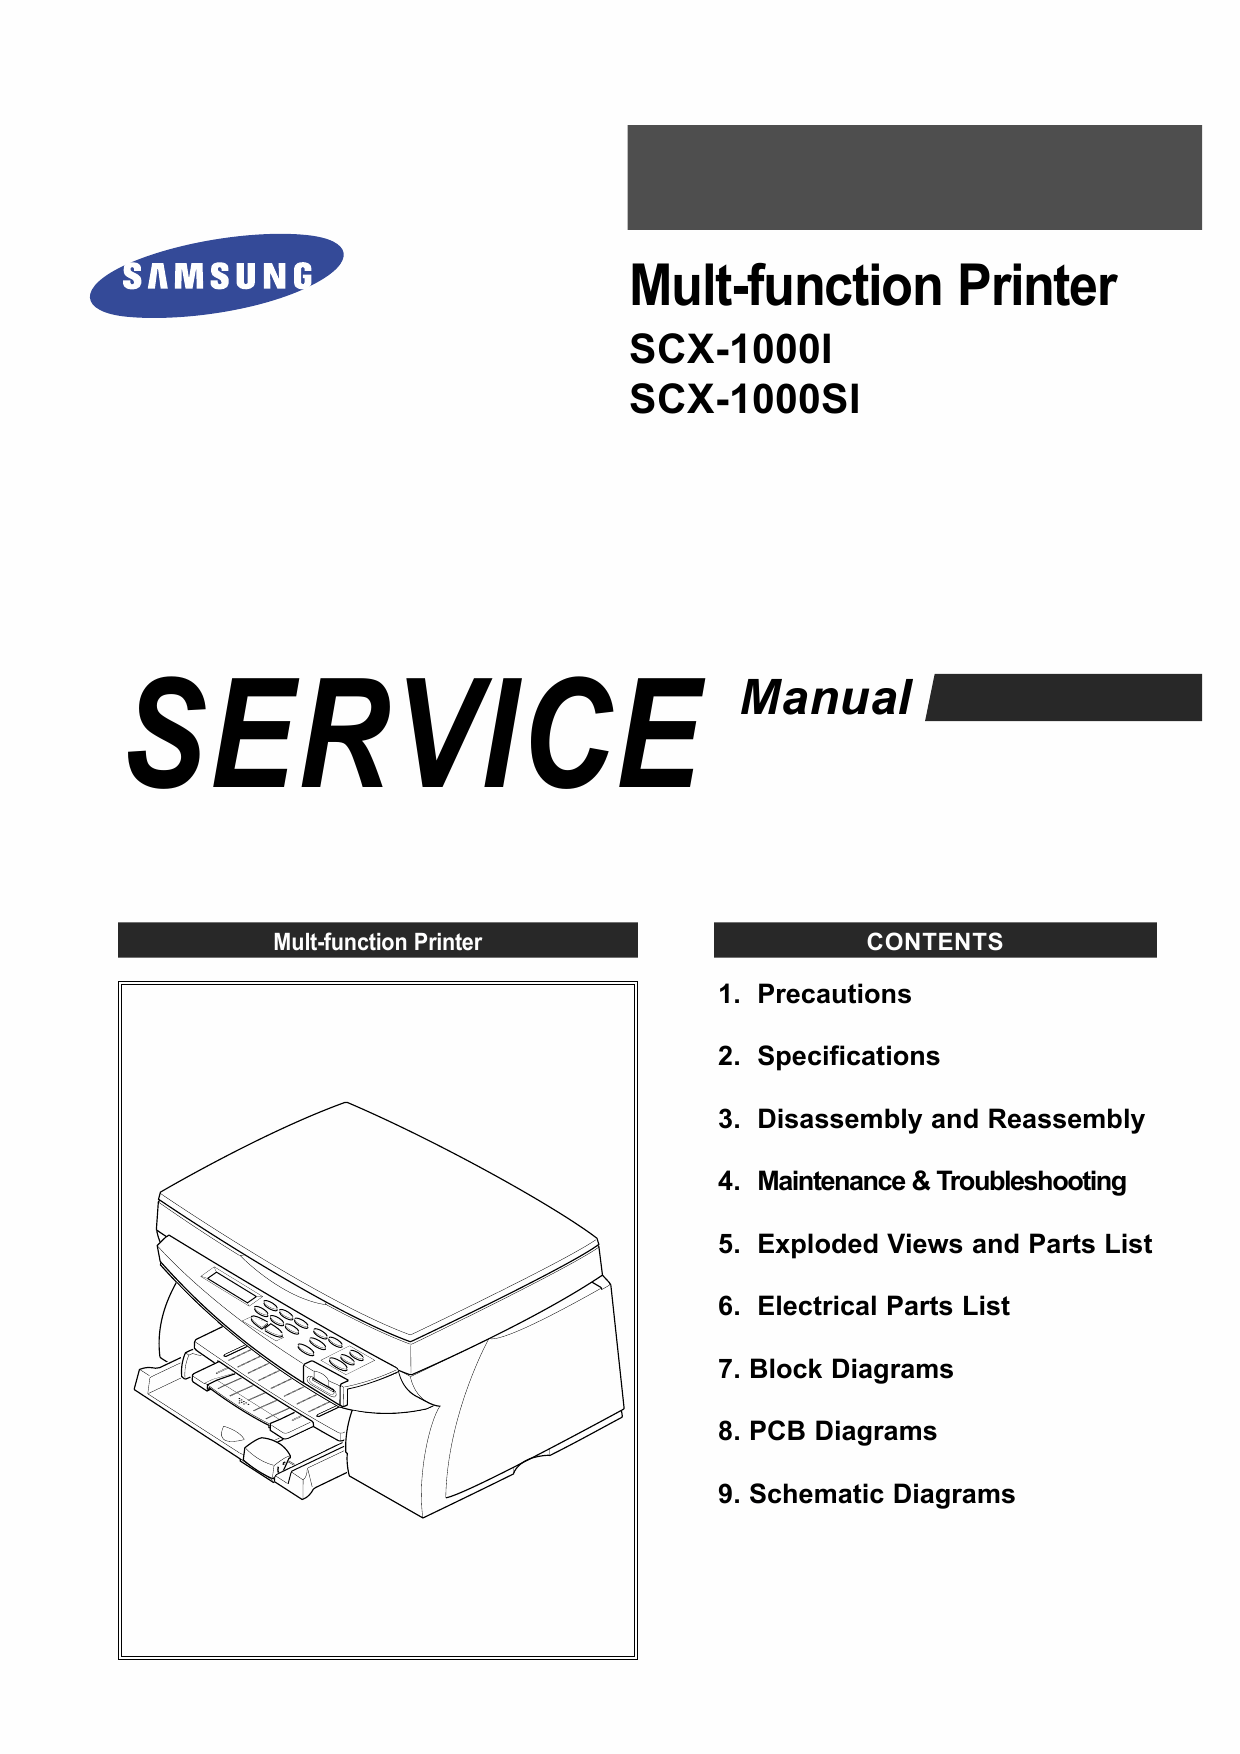 Samsung Multi-Function-Printer SCX-1000I 1000SI Parts and Service Manual-1